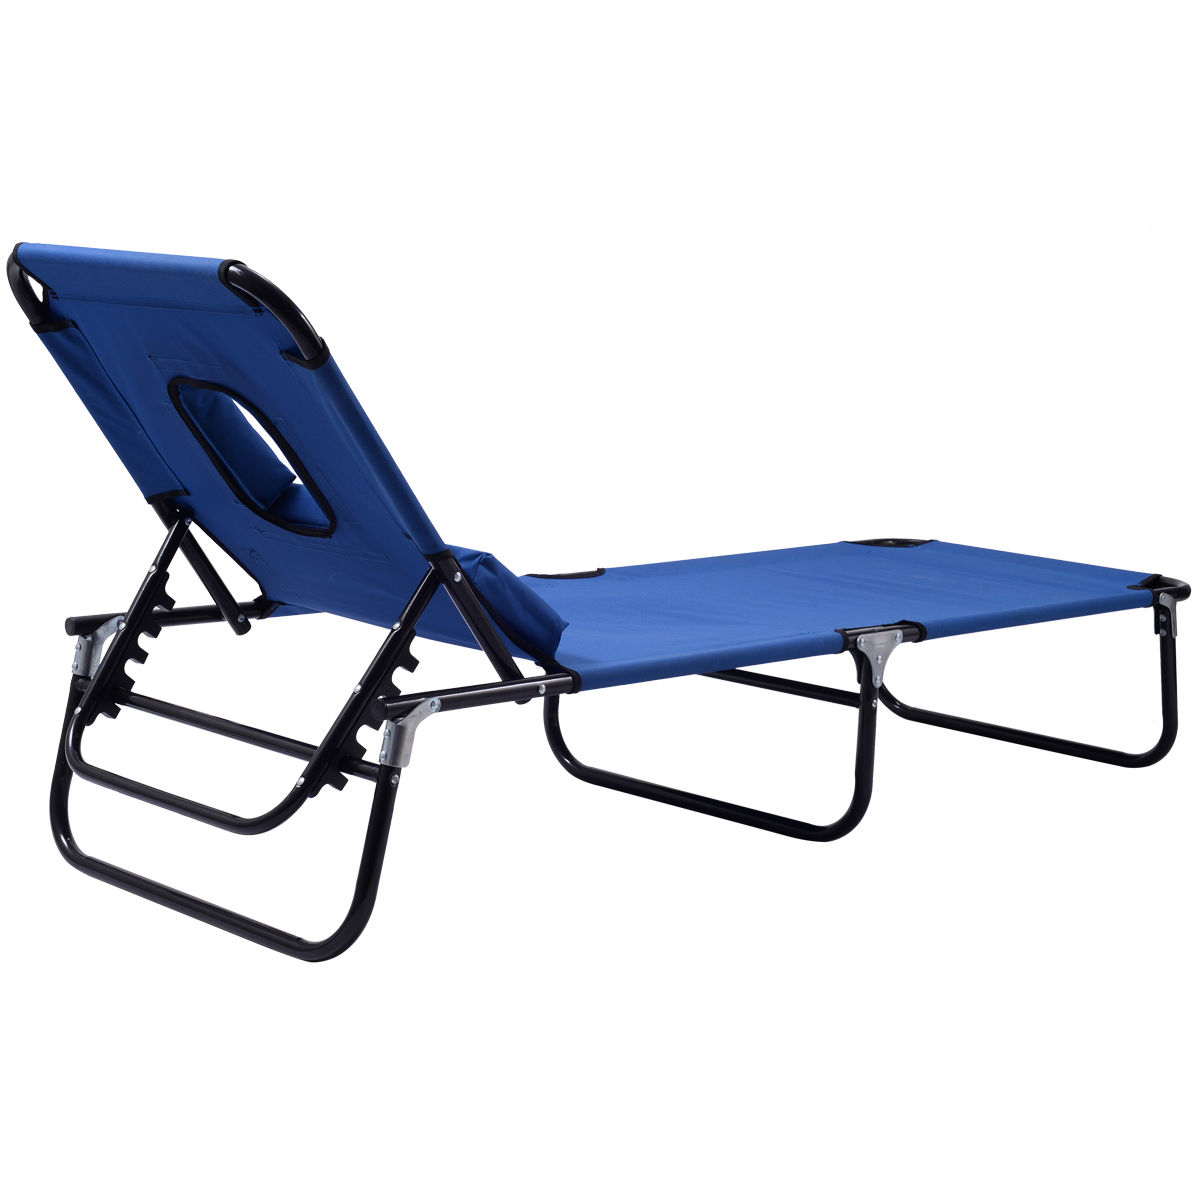 Preferred Foldable Camping And Lounge Chairs Intended For Costway Patio Foldable Chaise Lounge Chair Bed Outdoor Beach Camping  Recliner Pool Yard (View 20 of 25)